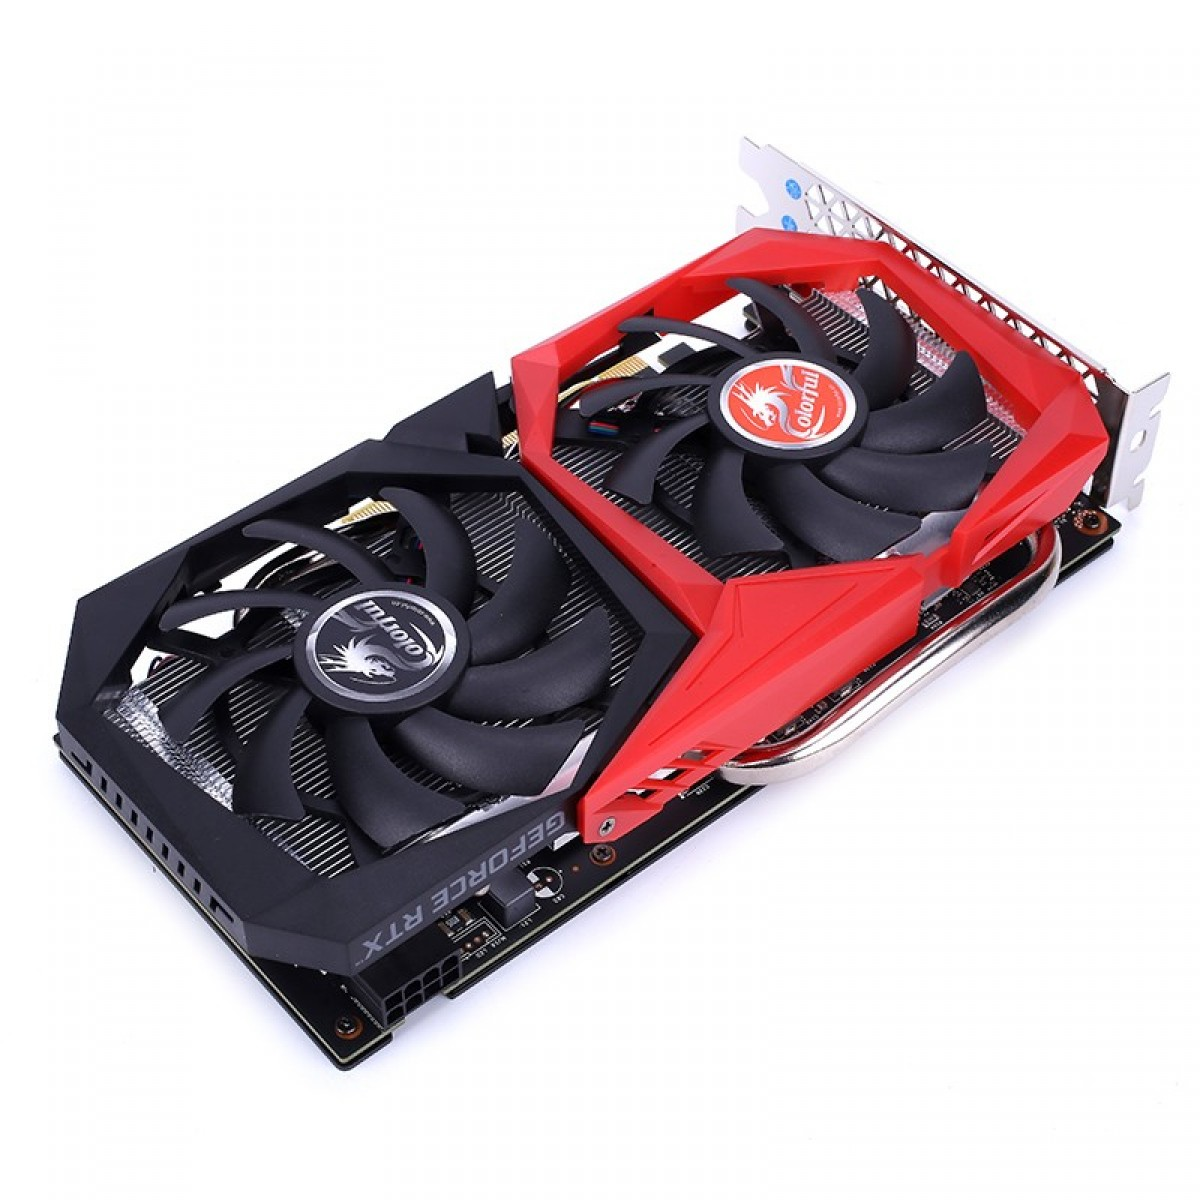 Placa de Vídeo Colorful NVIDIA GeForce RTX 2060 NB-V, 6GB, GDDR6, 192bit, 212327110831